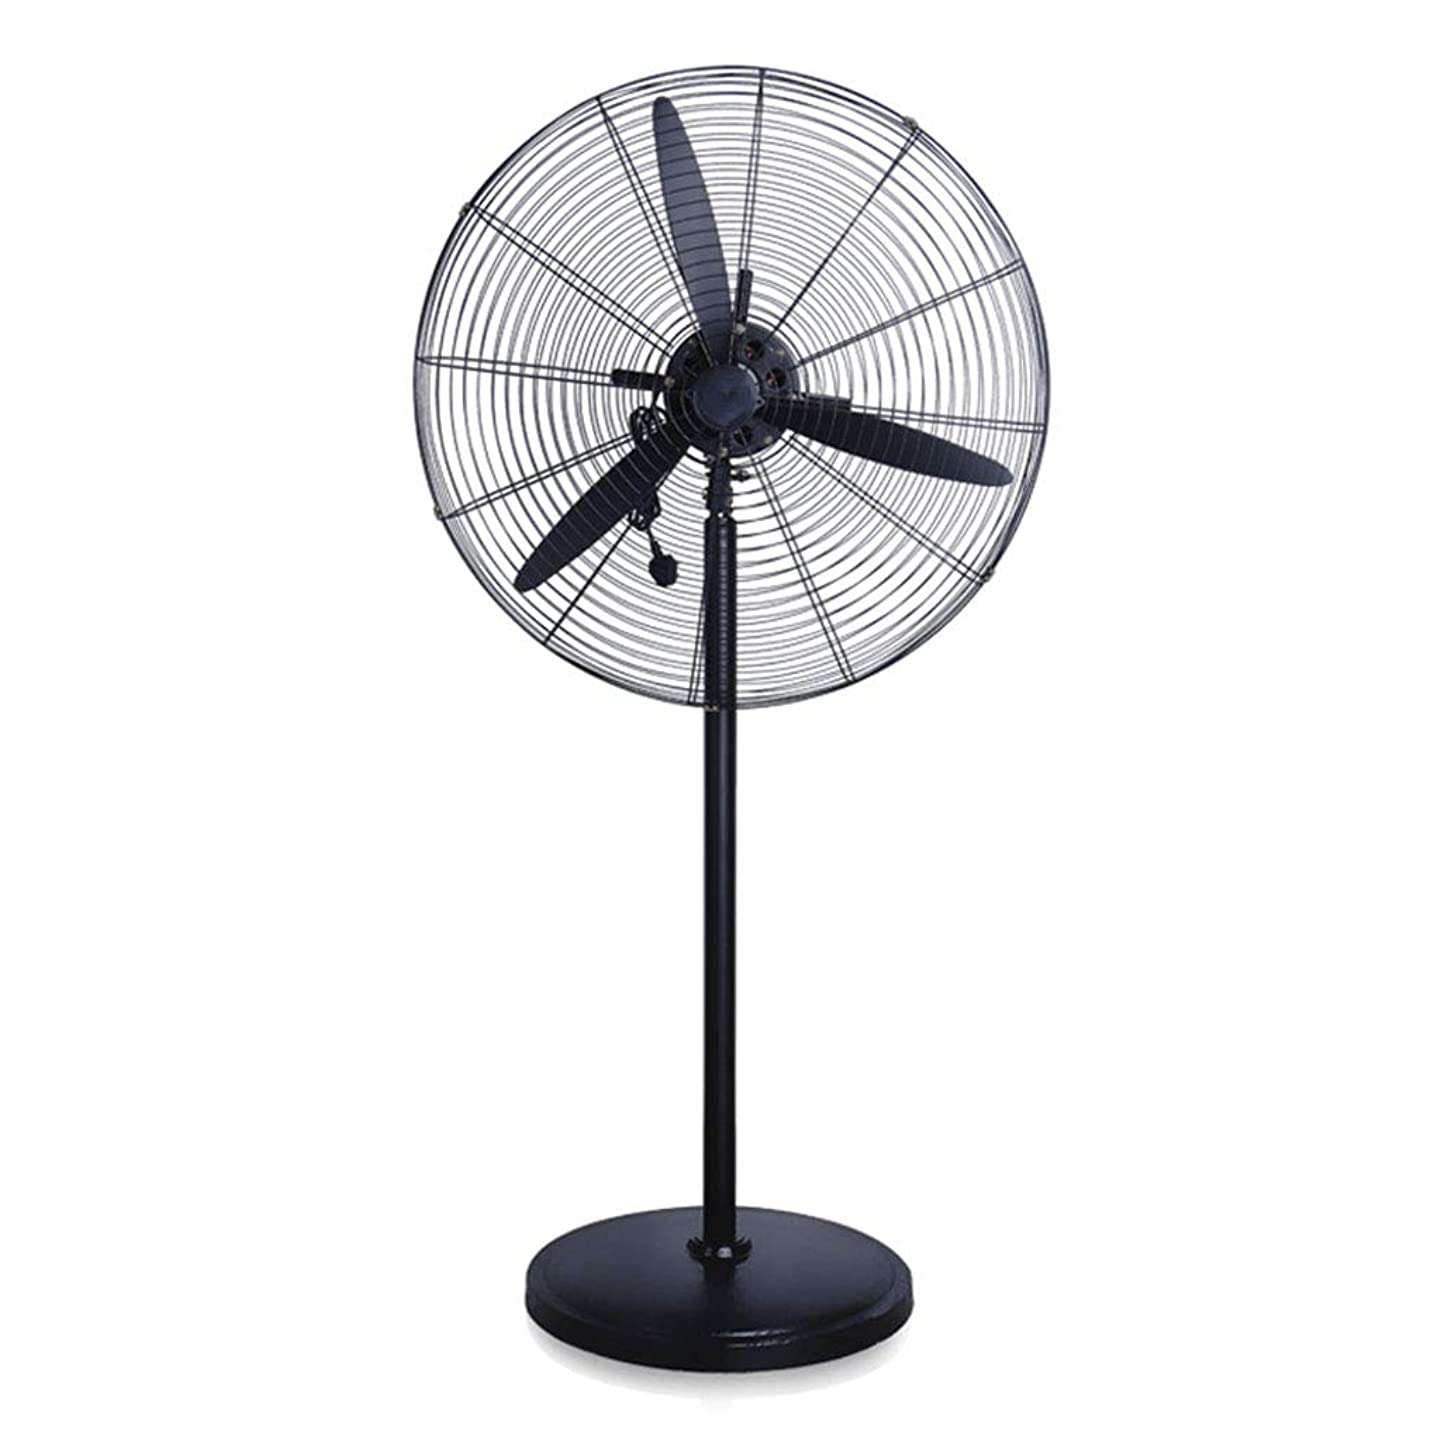 Industrial Horn Fan Stand Fan Strong Industrial Fan 3 Speed High Power Mechanical Oscillating Floor Fan Commercial Pivoting Fan Head Silent Simple and Easy to Assemble 110V/60Hz